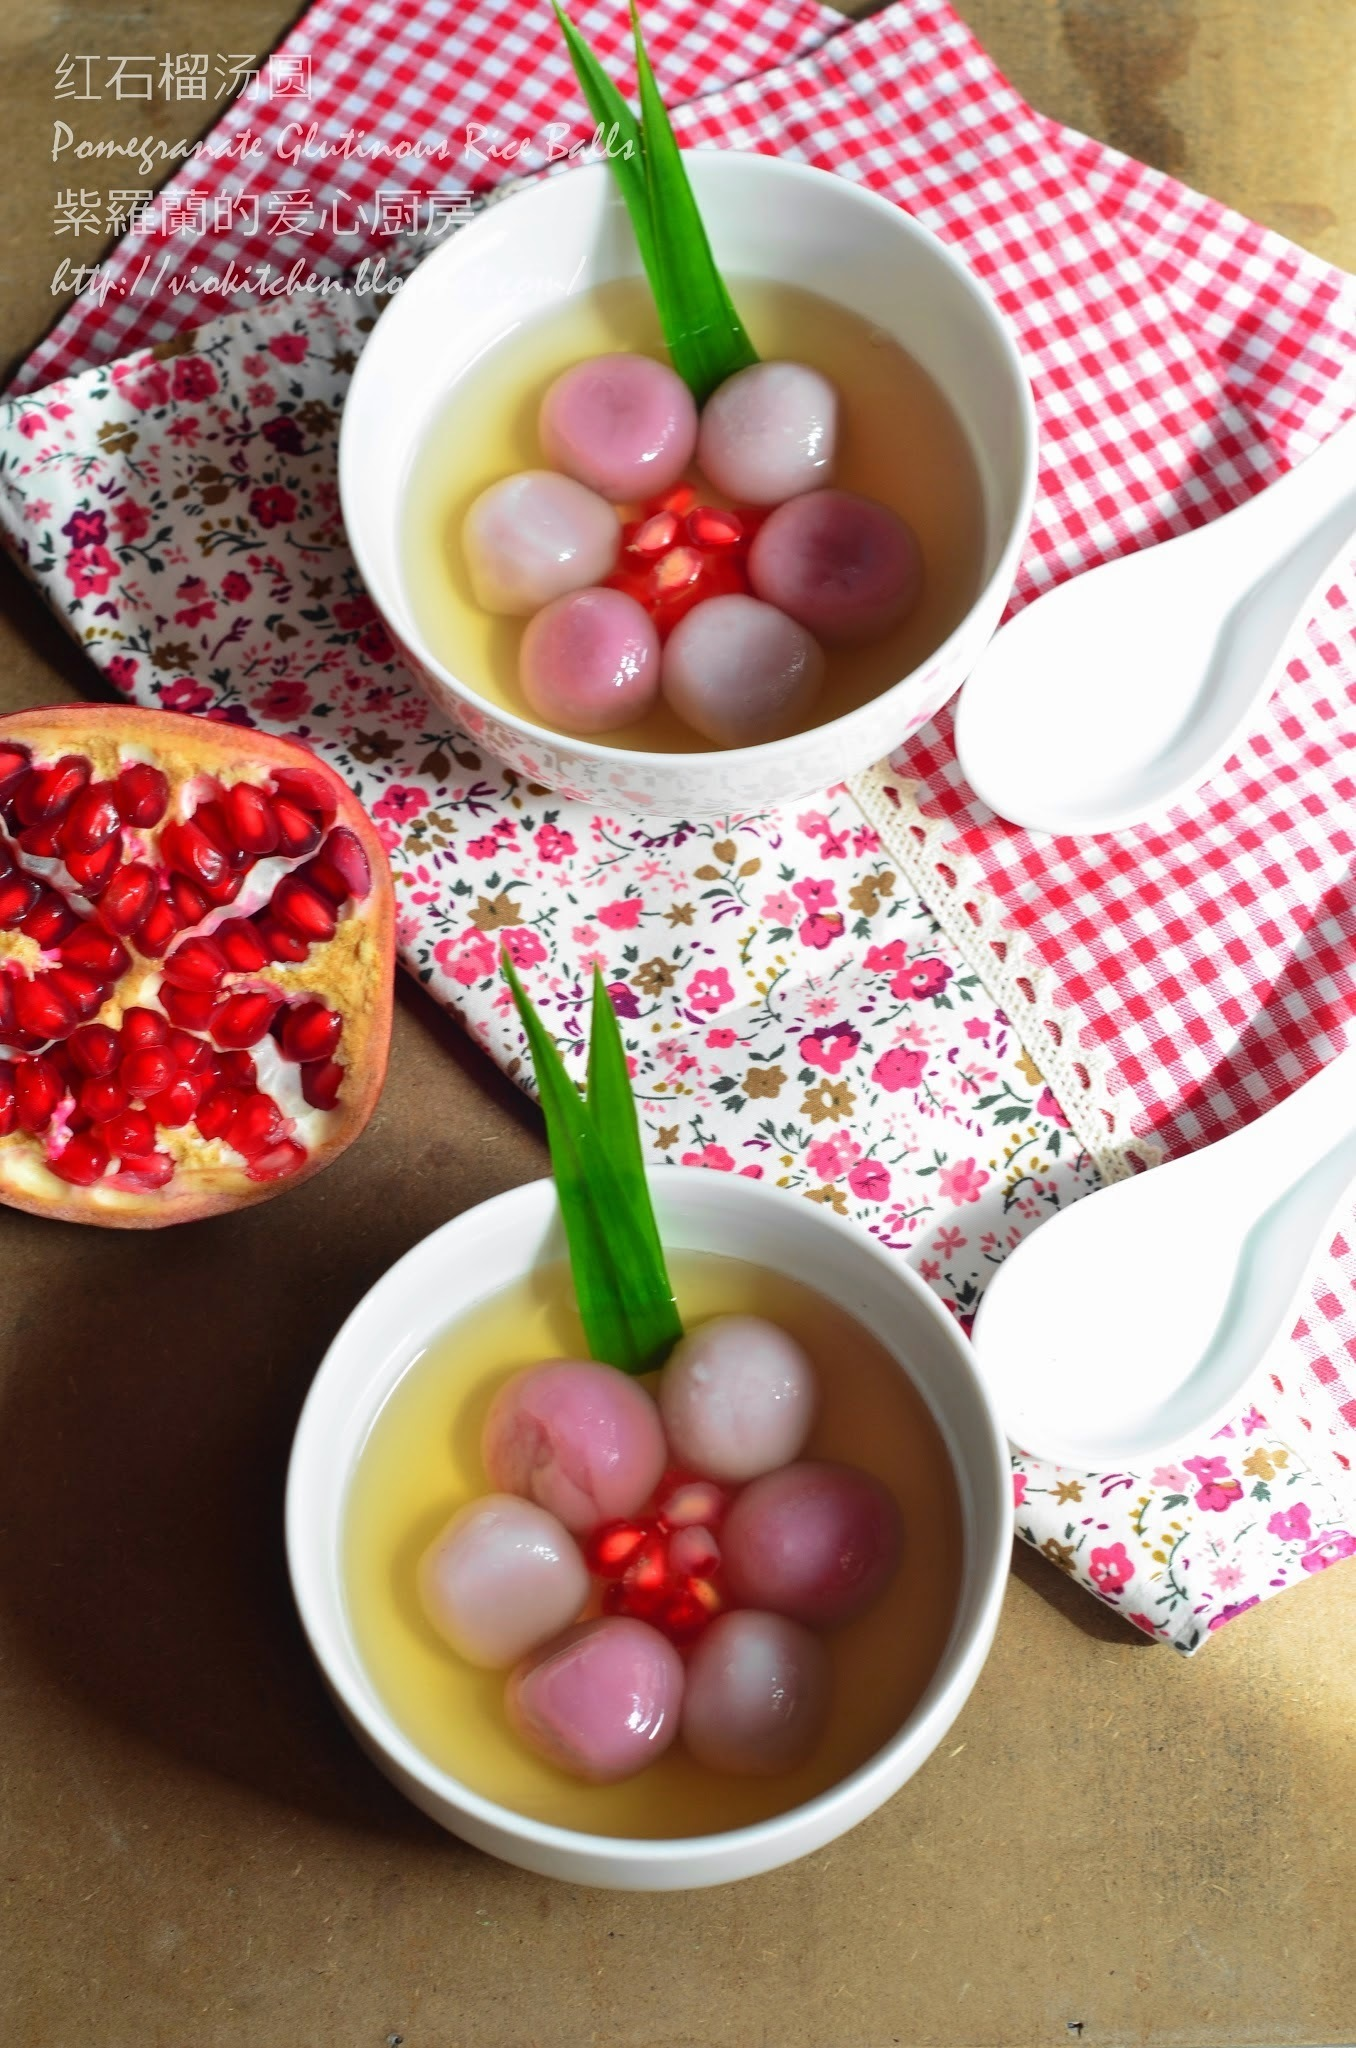 红石榴汤圆 Pomegranate Glutinous Rice Balls